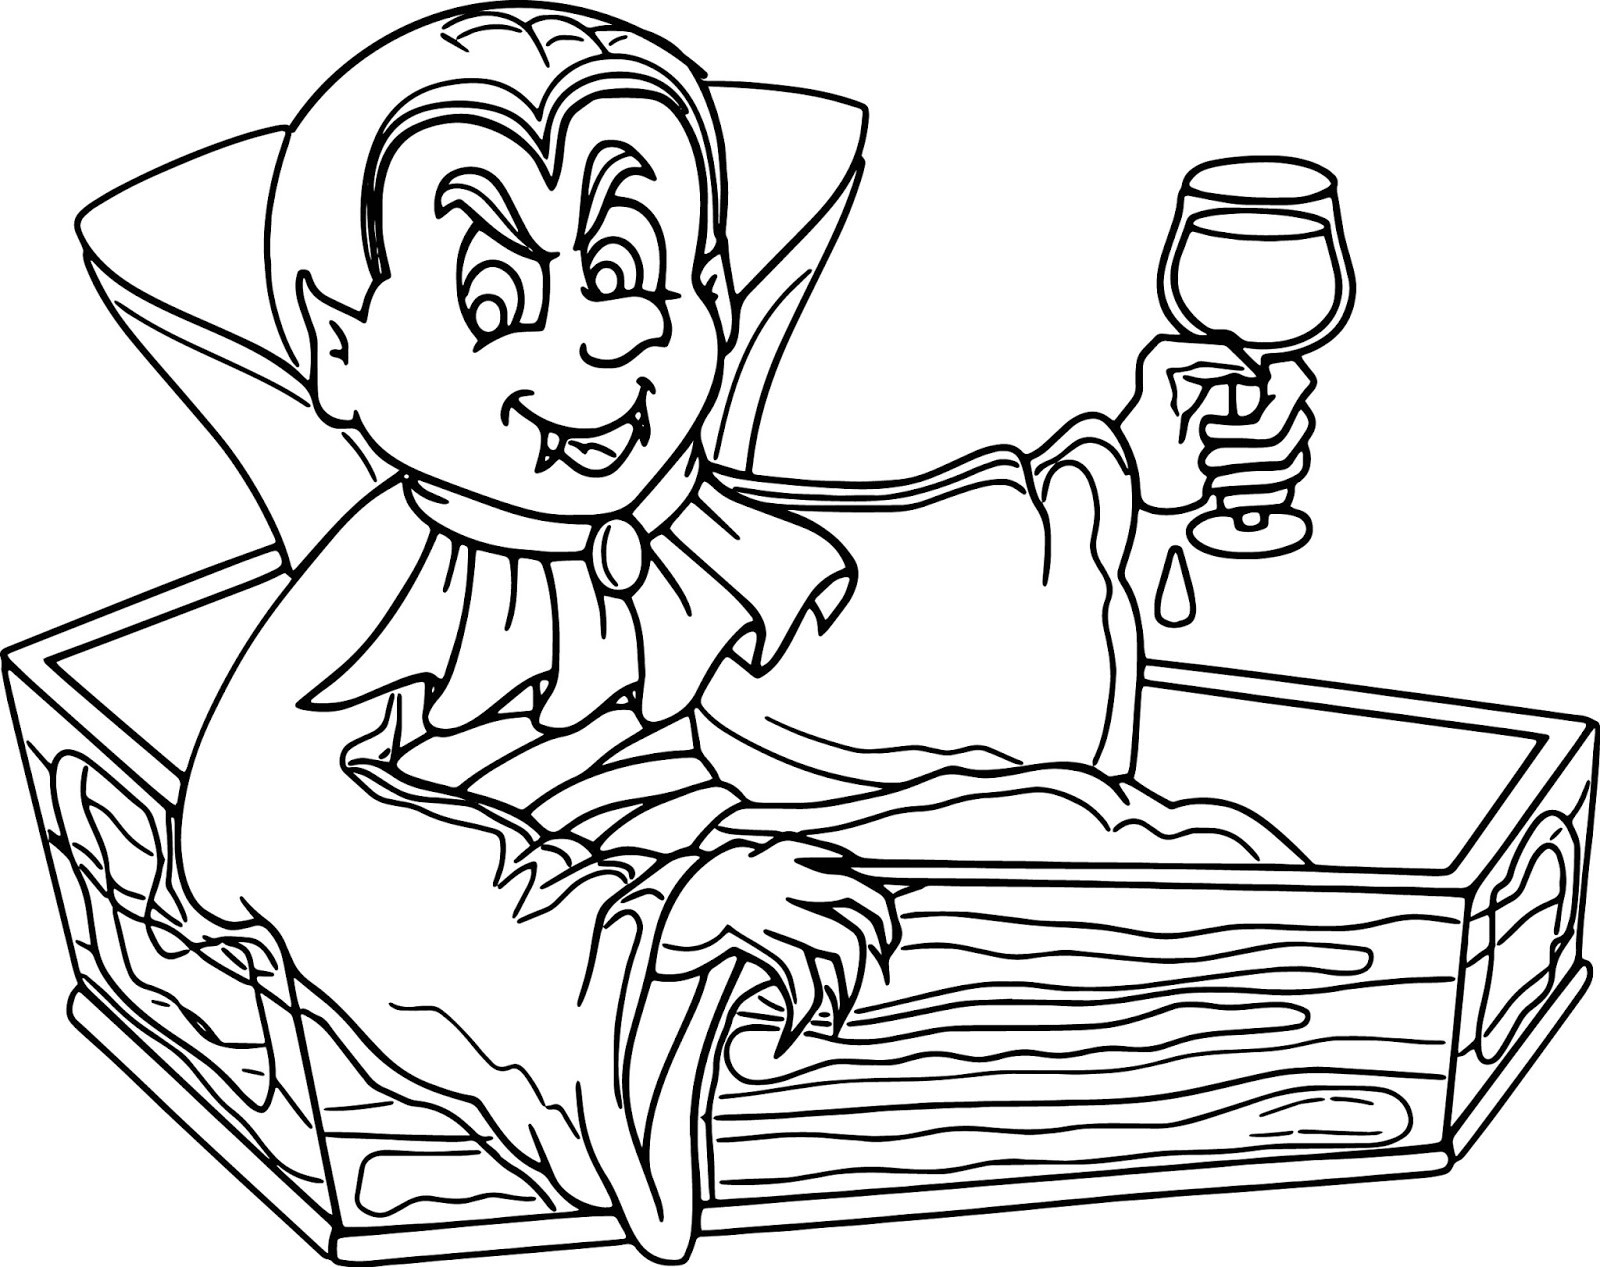 Vampire Coloring Pages Vampire Out From His Coffin for Halloween